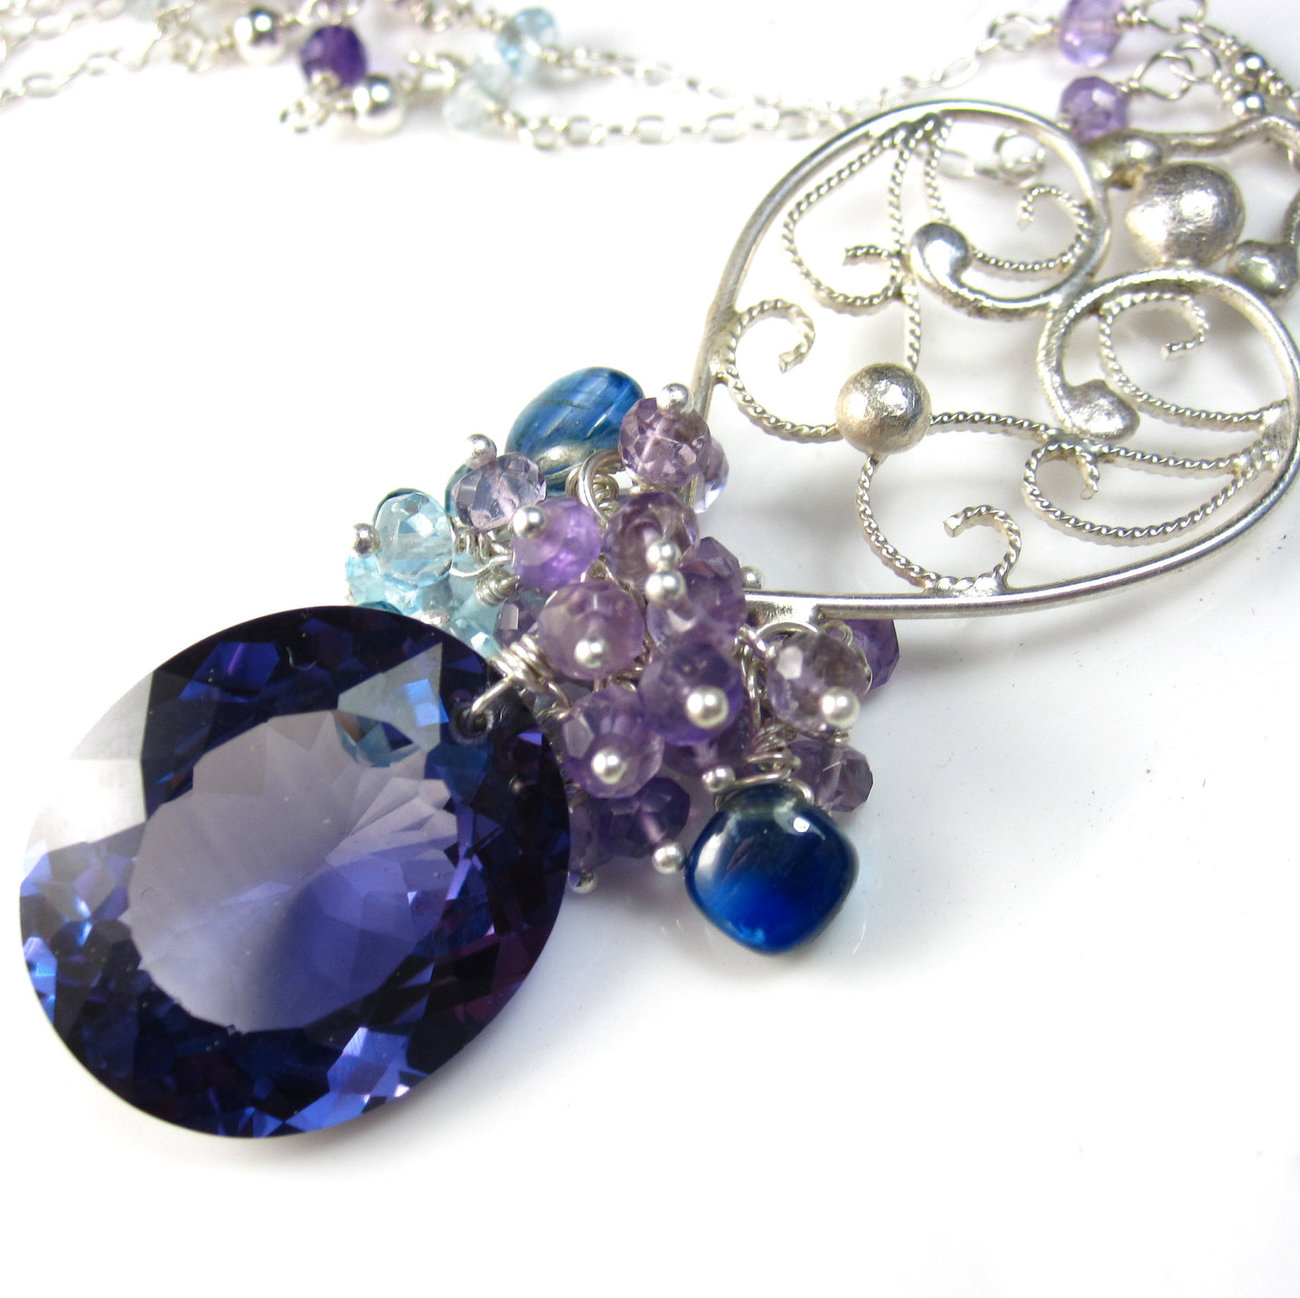 Purple Midnight Necklace - Alexandrite, Gemstone, and Sterling Silver